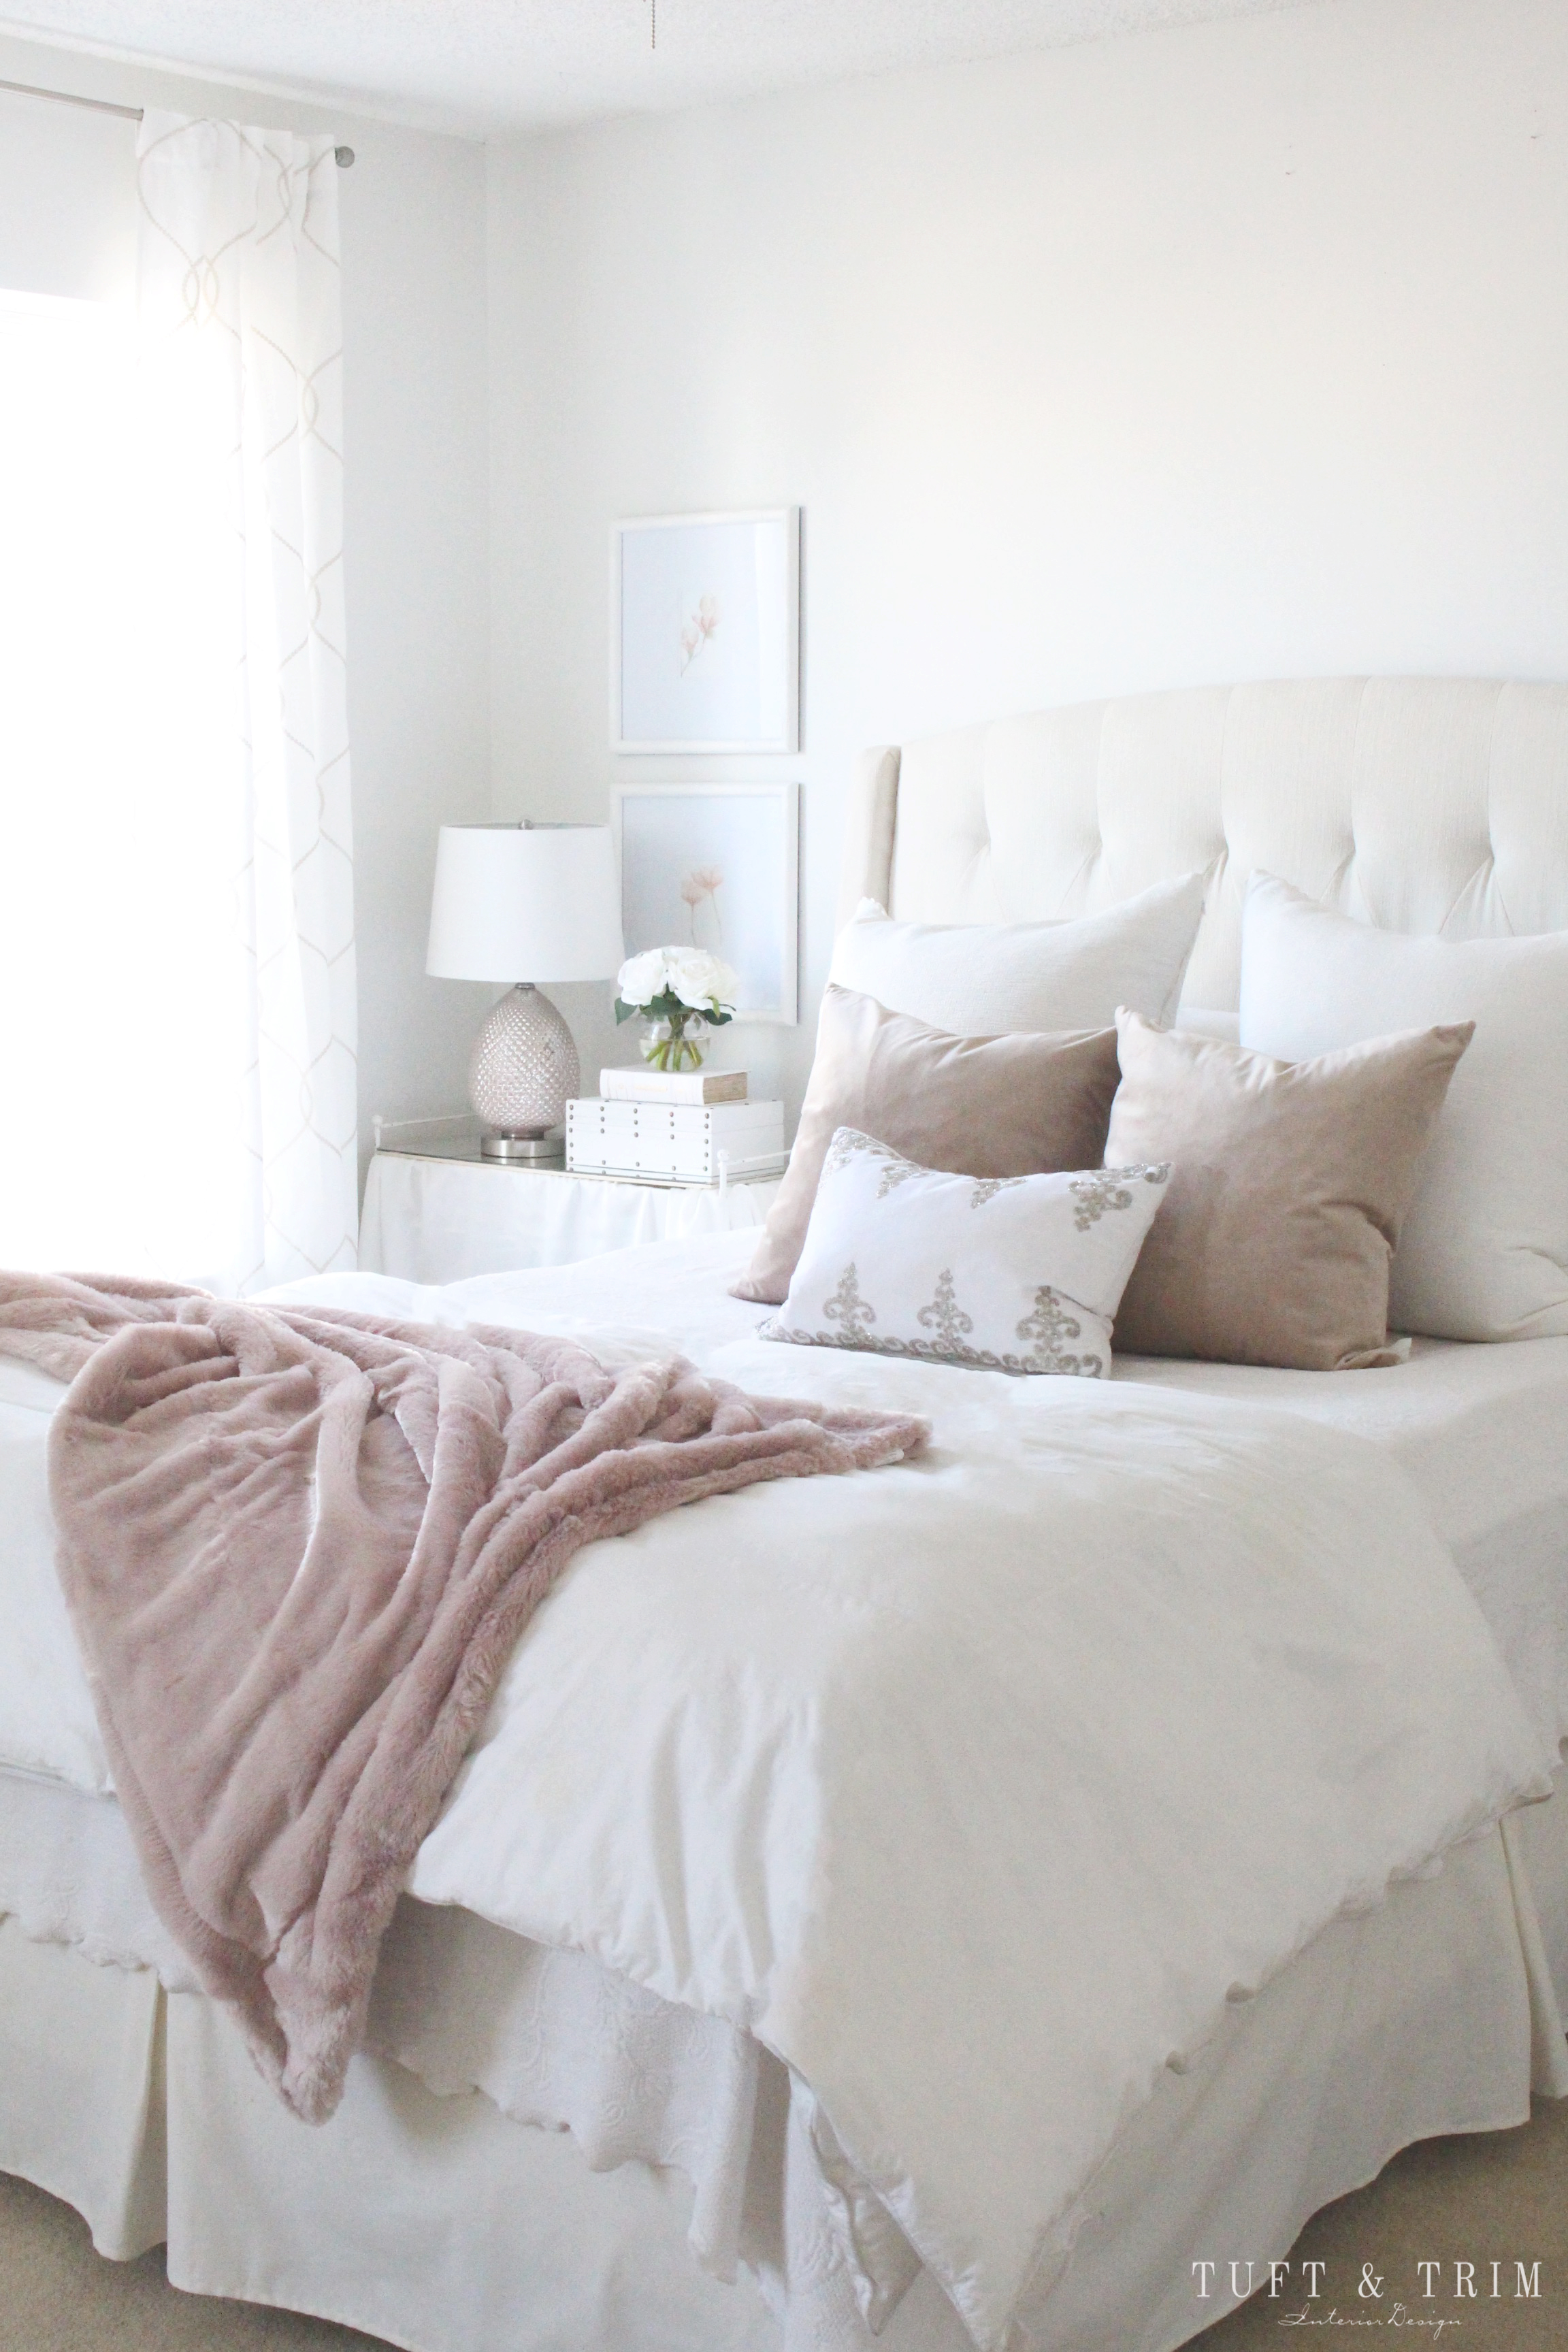 Elegantly Blush Bedroom Design Transformation- See More Pics at Tuft & Trim